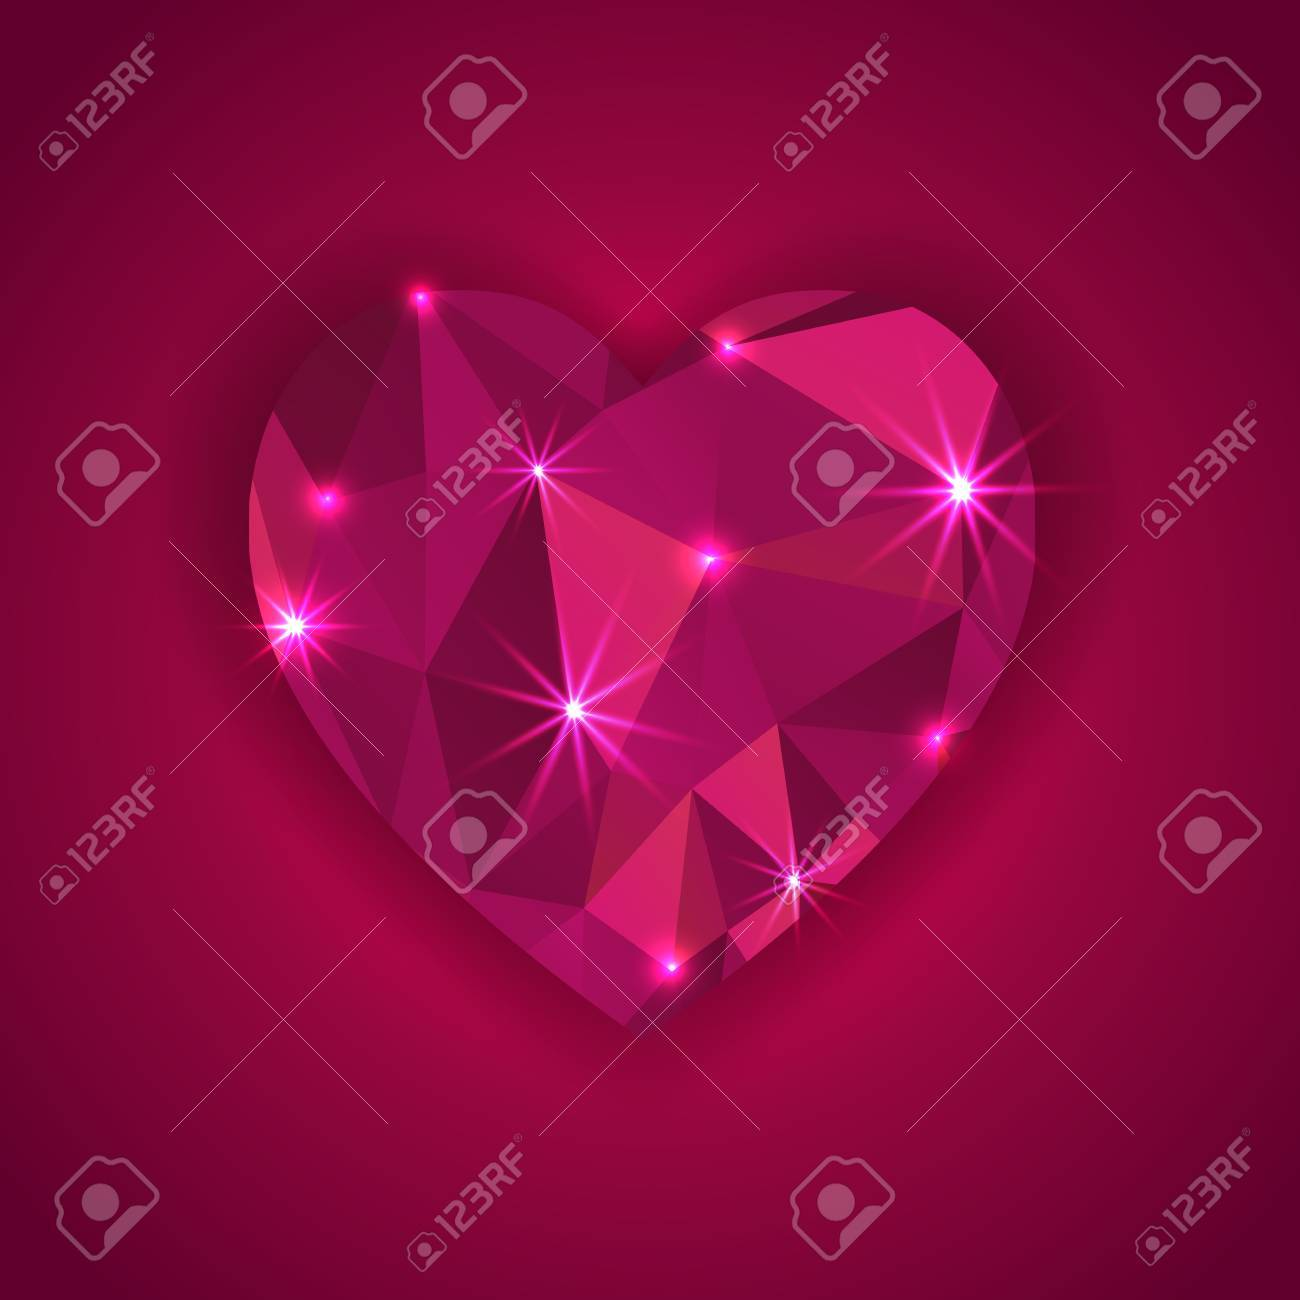 red diamond heart shape with star lights effect  greeting card Stock Vector - 24665759